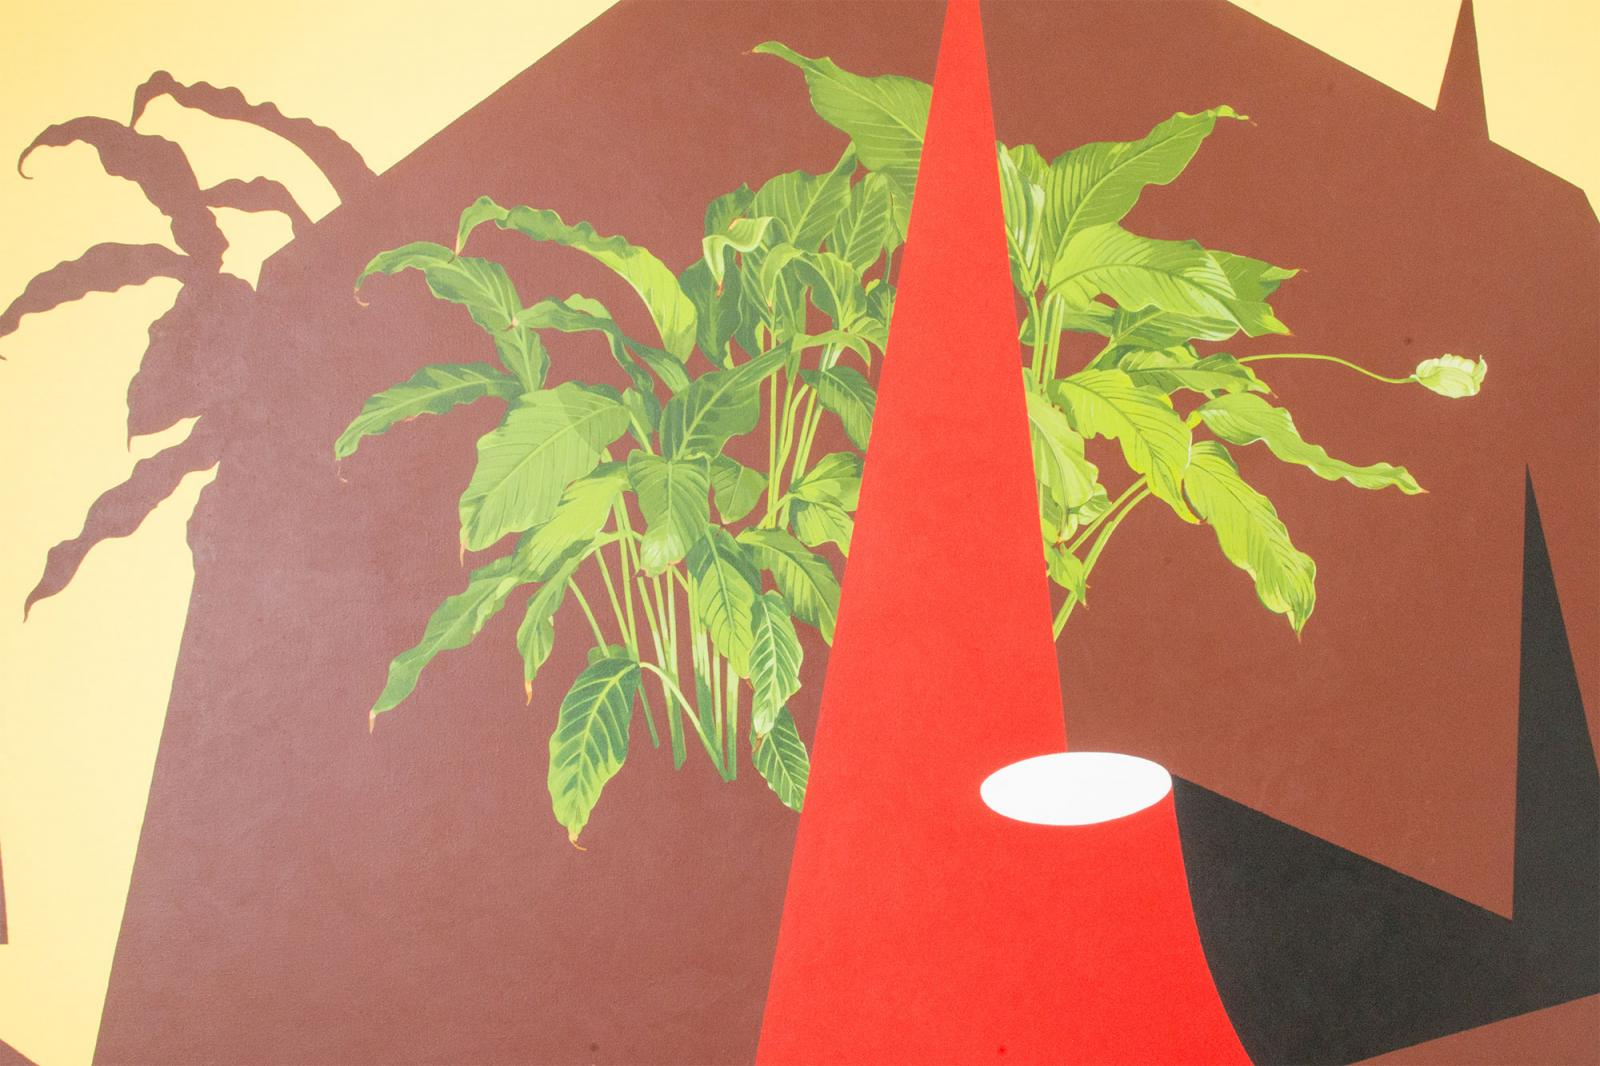 Patrick Caulfield at The approach